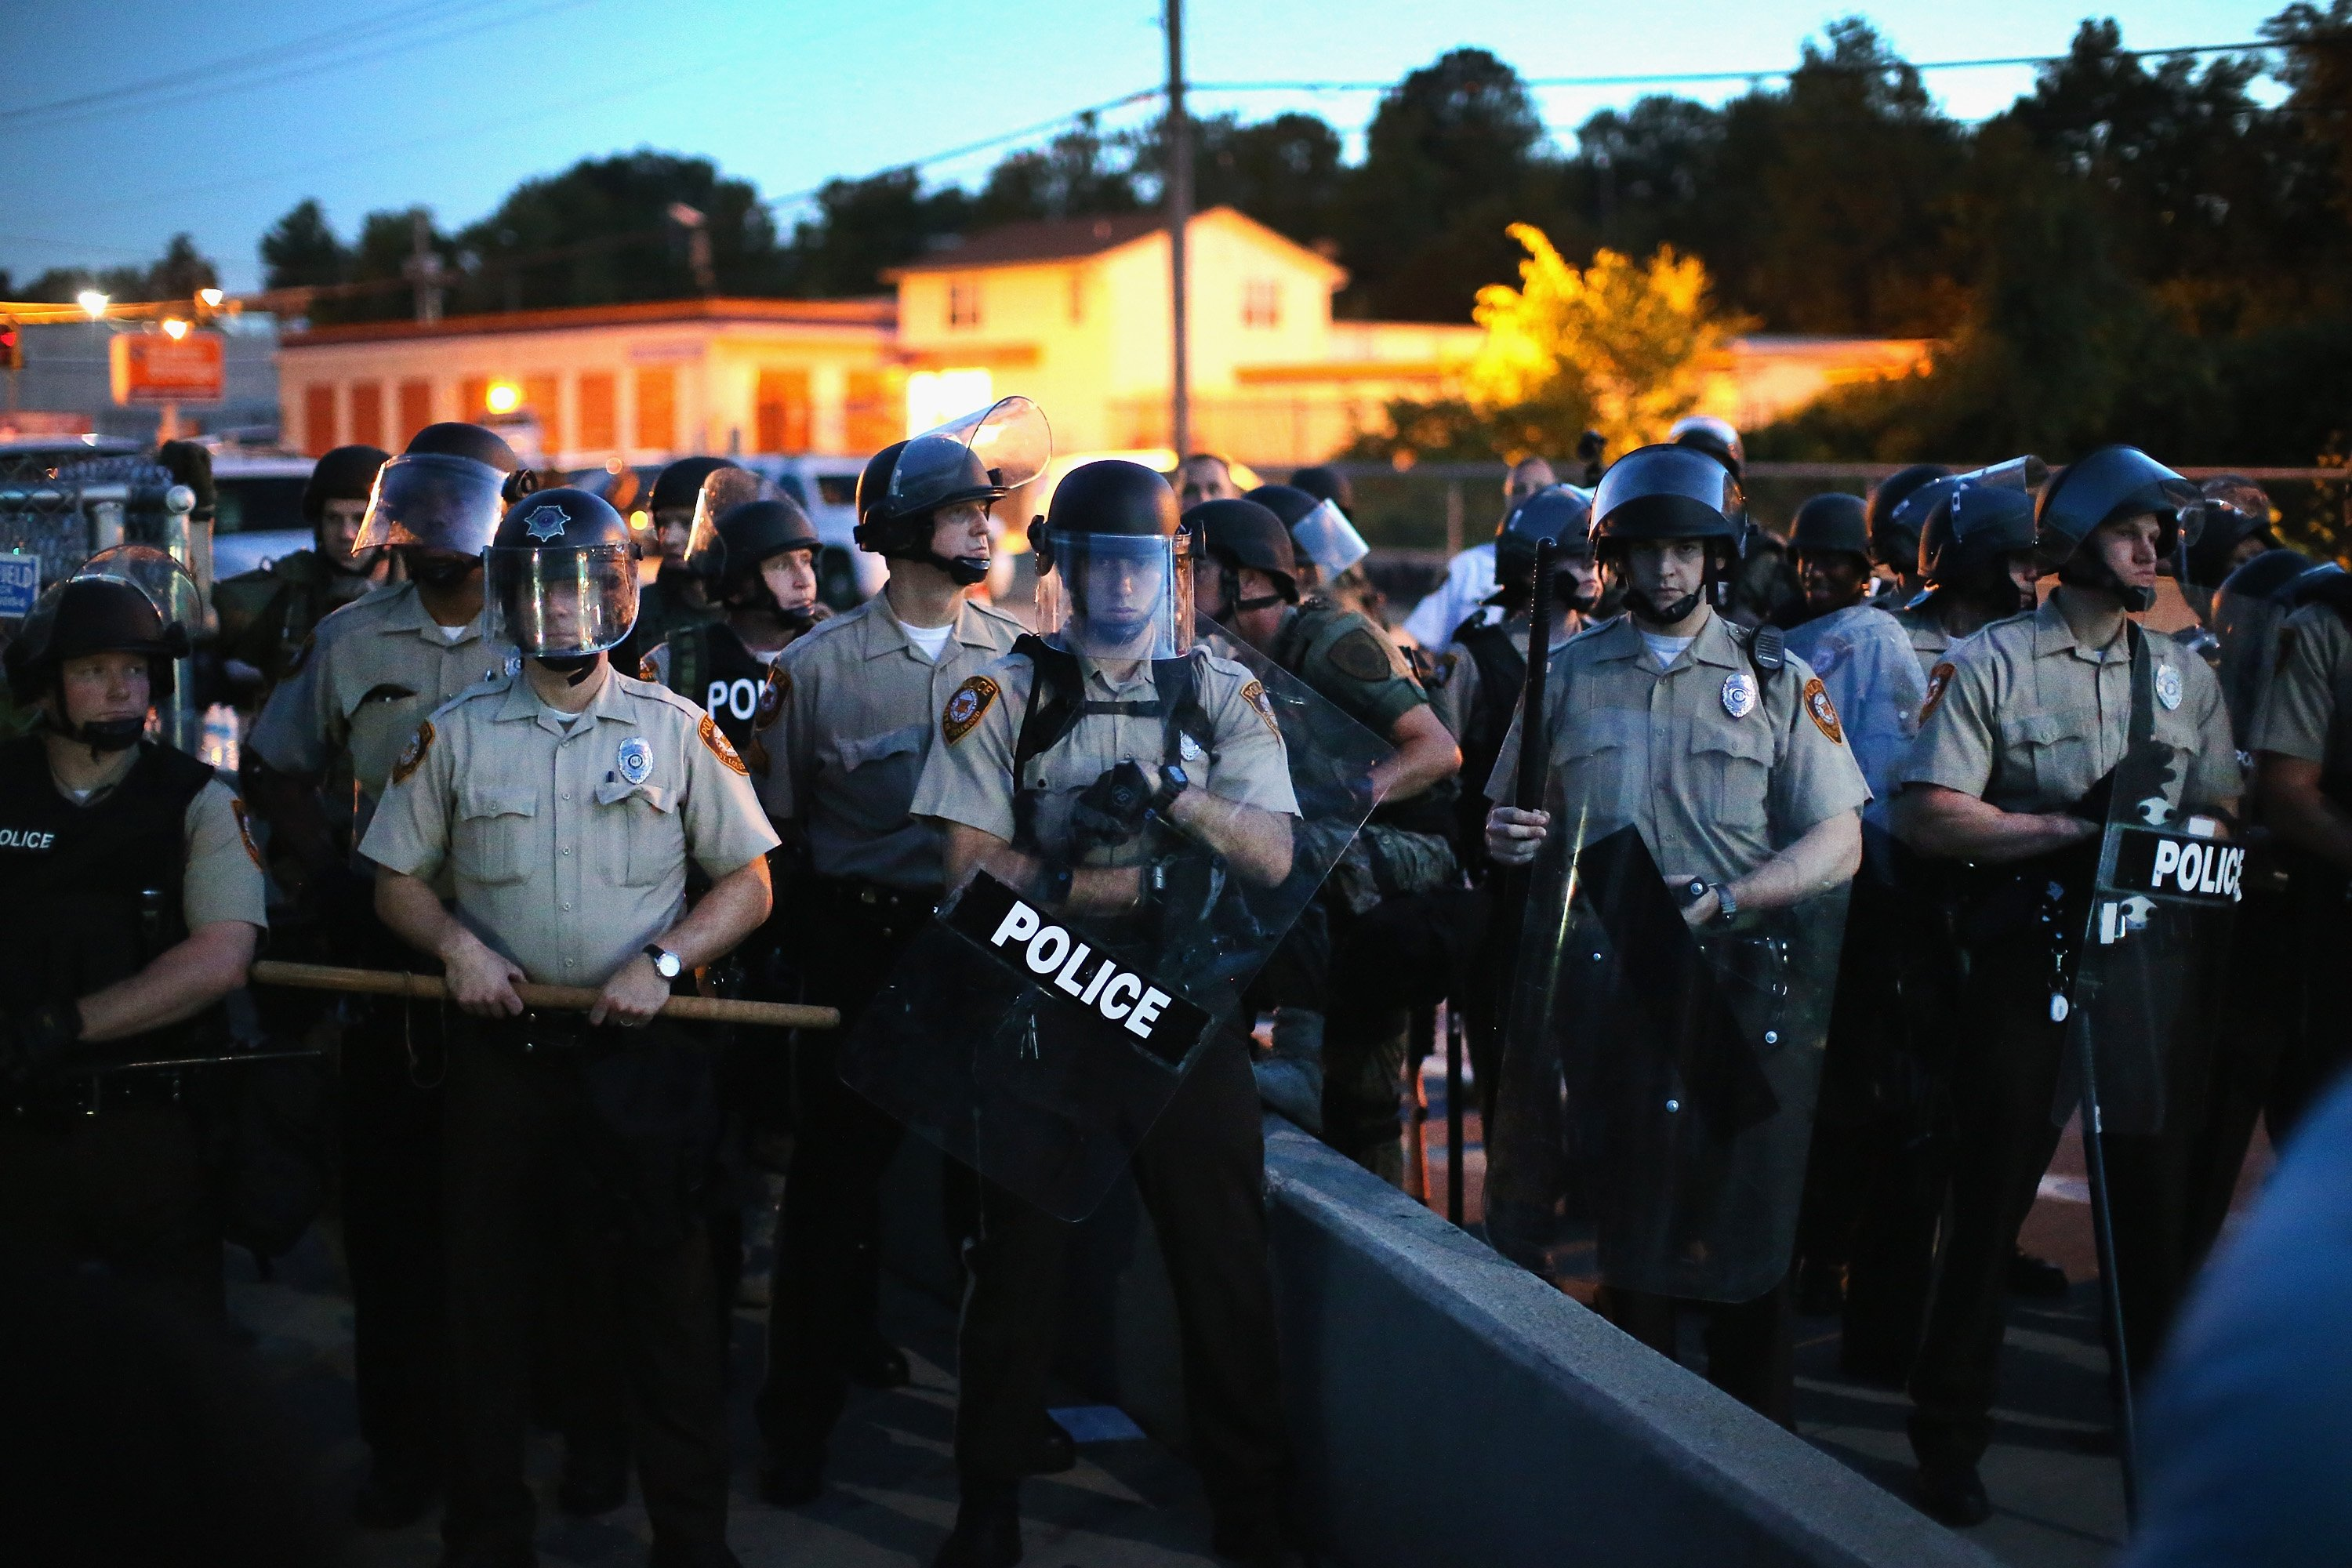 Police stand watch as demonstrators protest the shooting death of teenager Michael Brown in Ferguson, Mo. on Aug. 13, 2014.